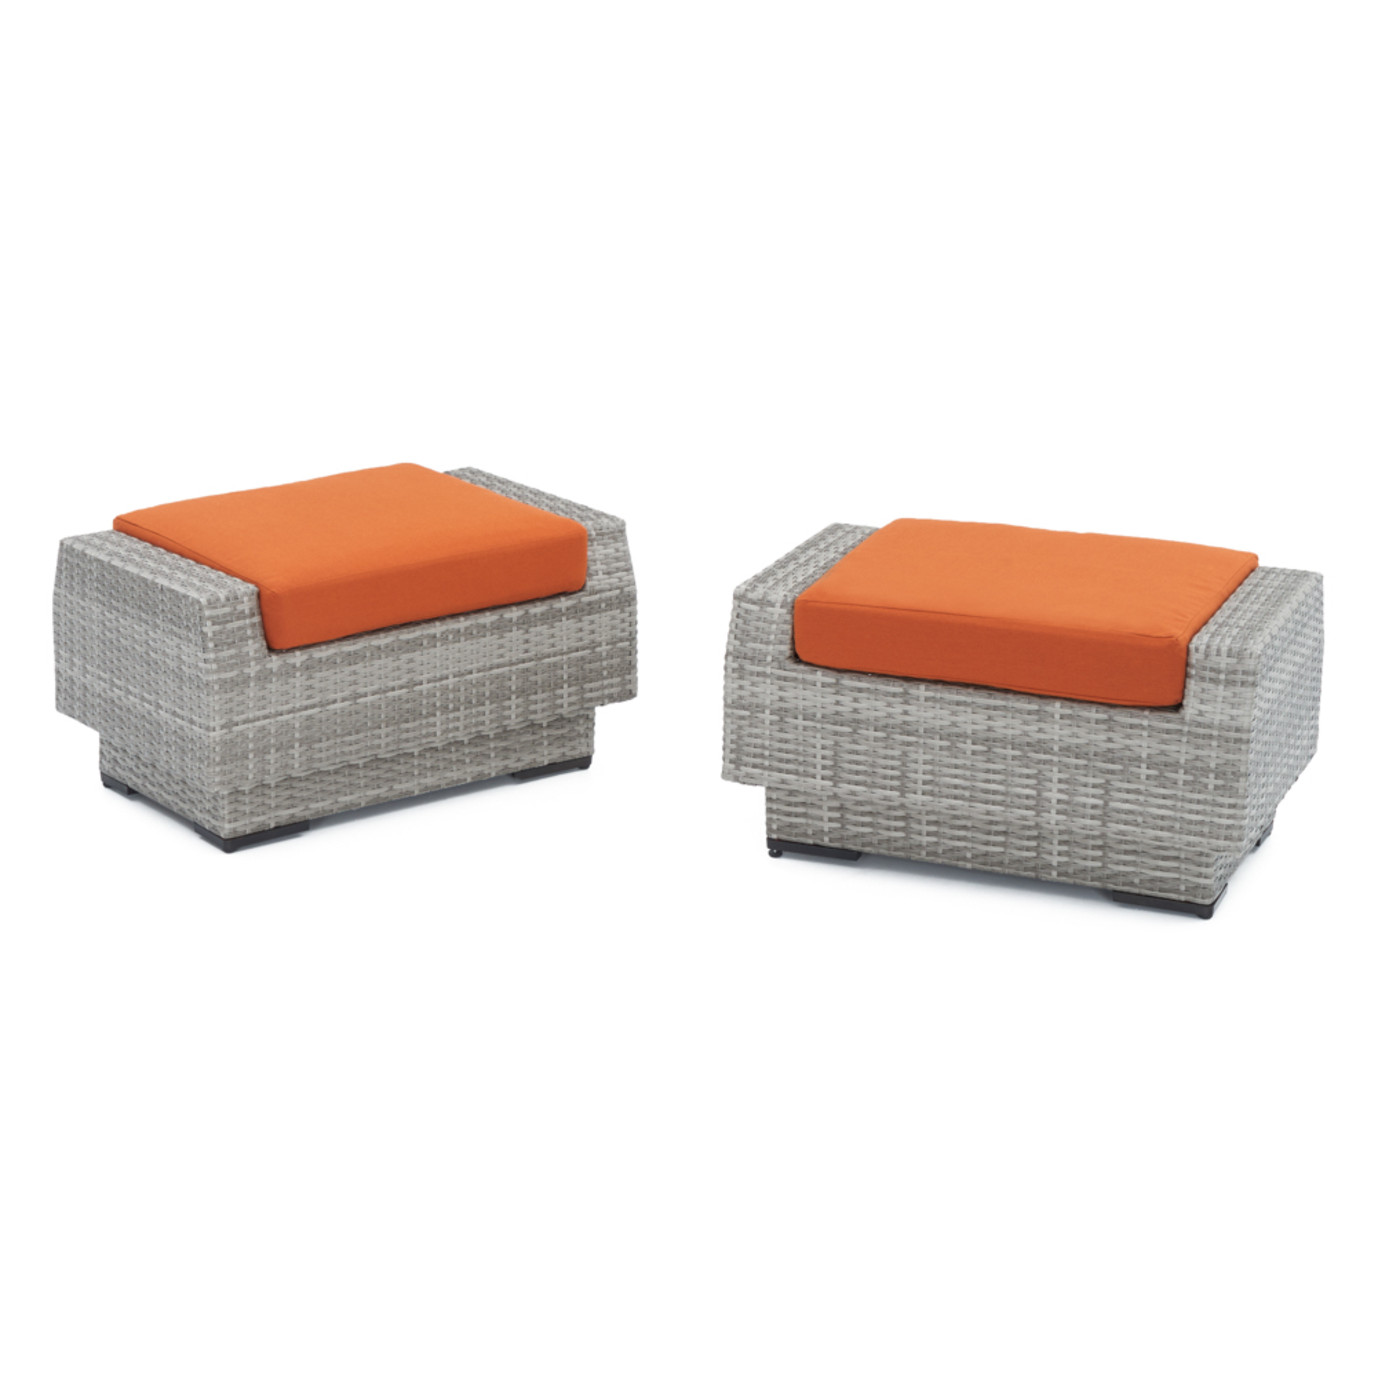 Cannes™ Club Ottomans - Tikka Orange